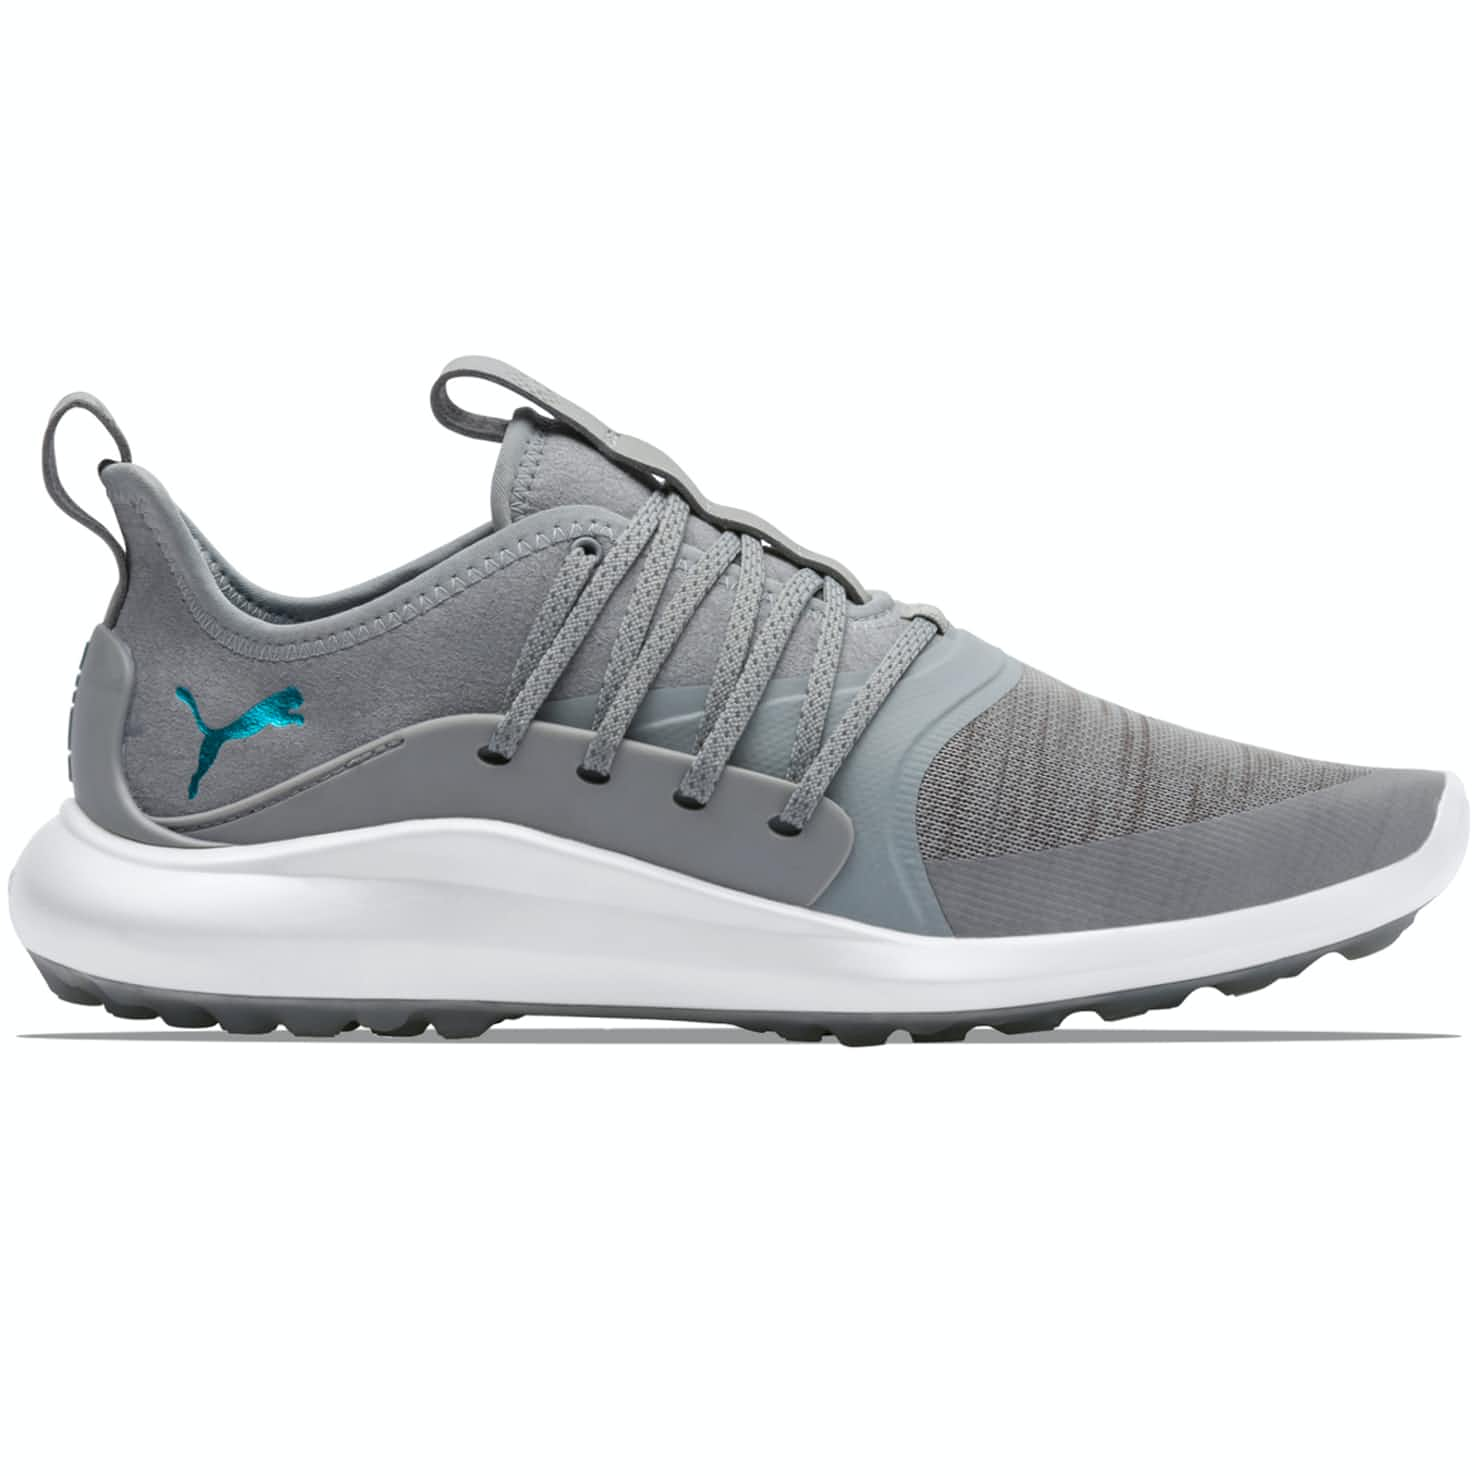 Womens Ignite NXT Solelace Quarry/Caribbean Sea - 2020